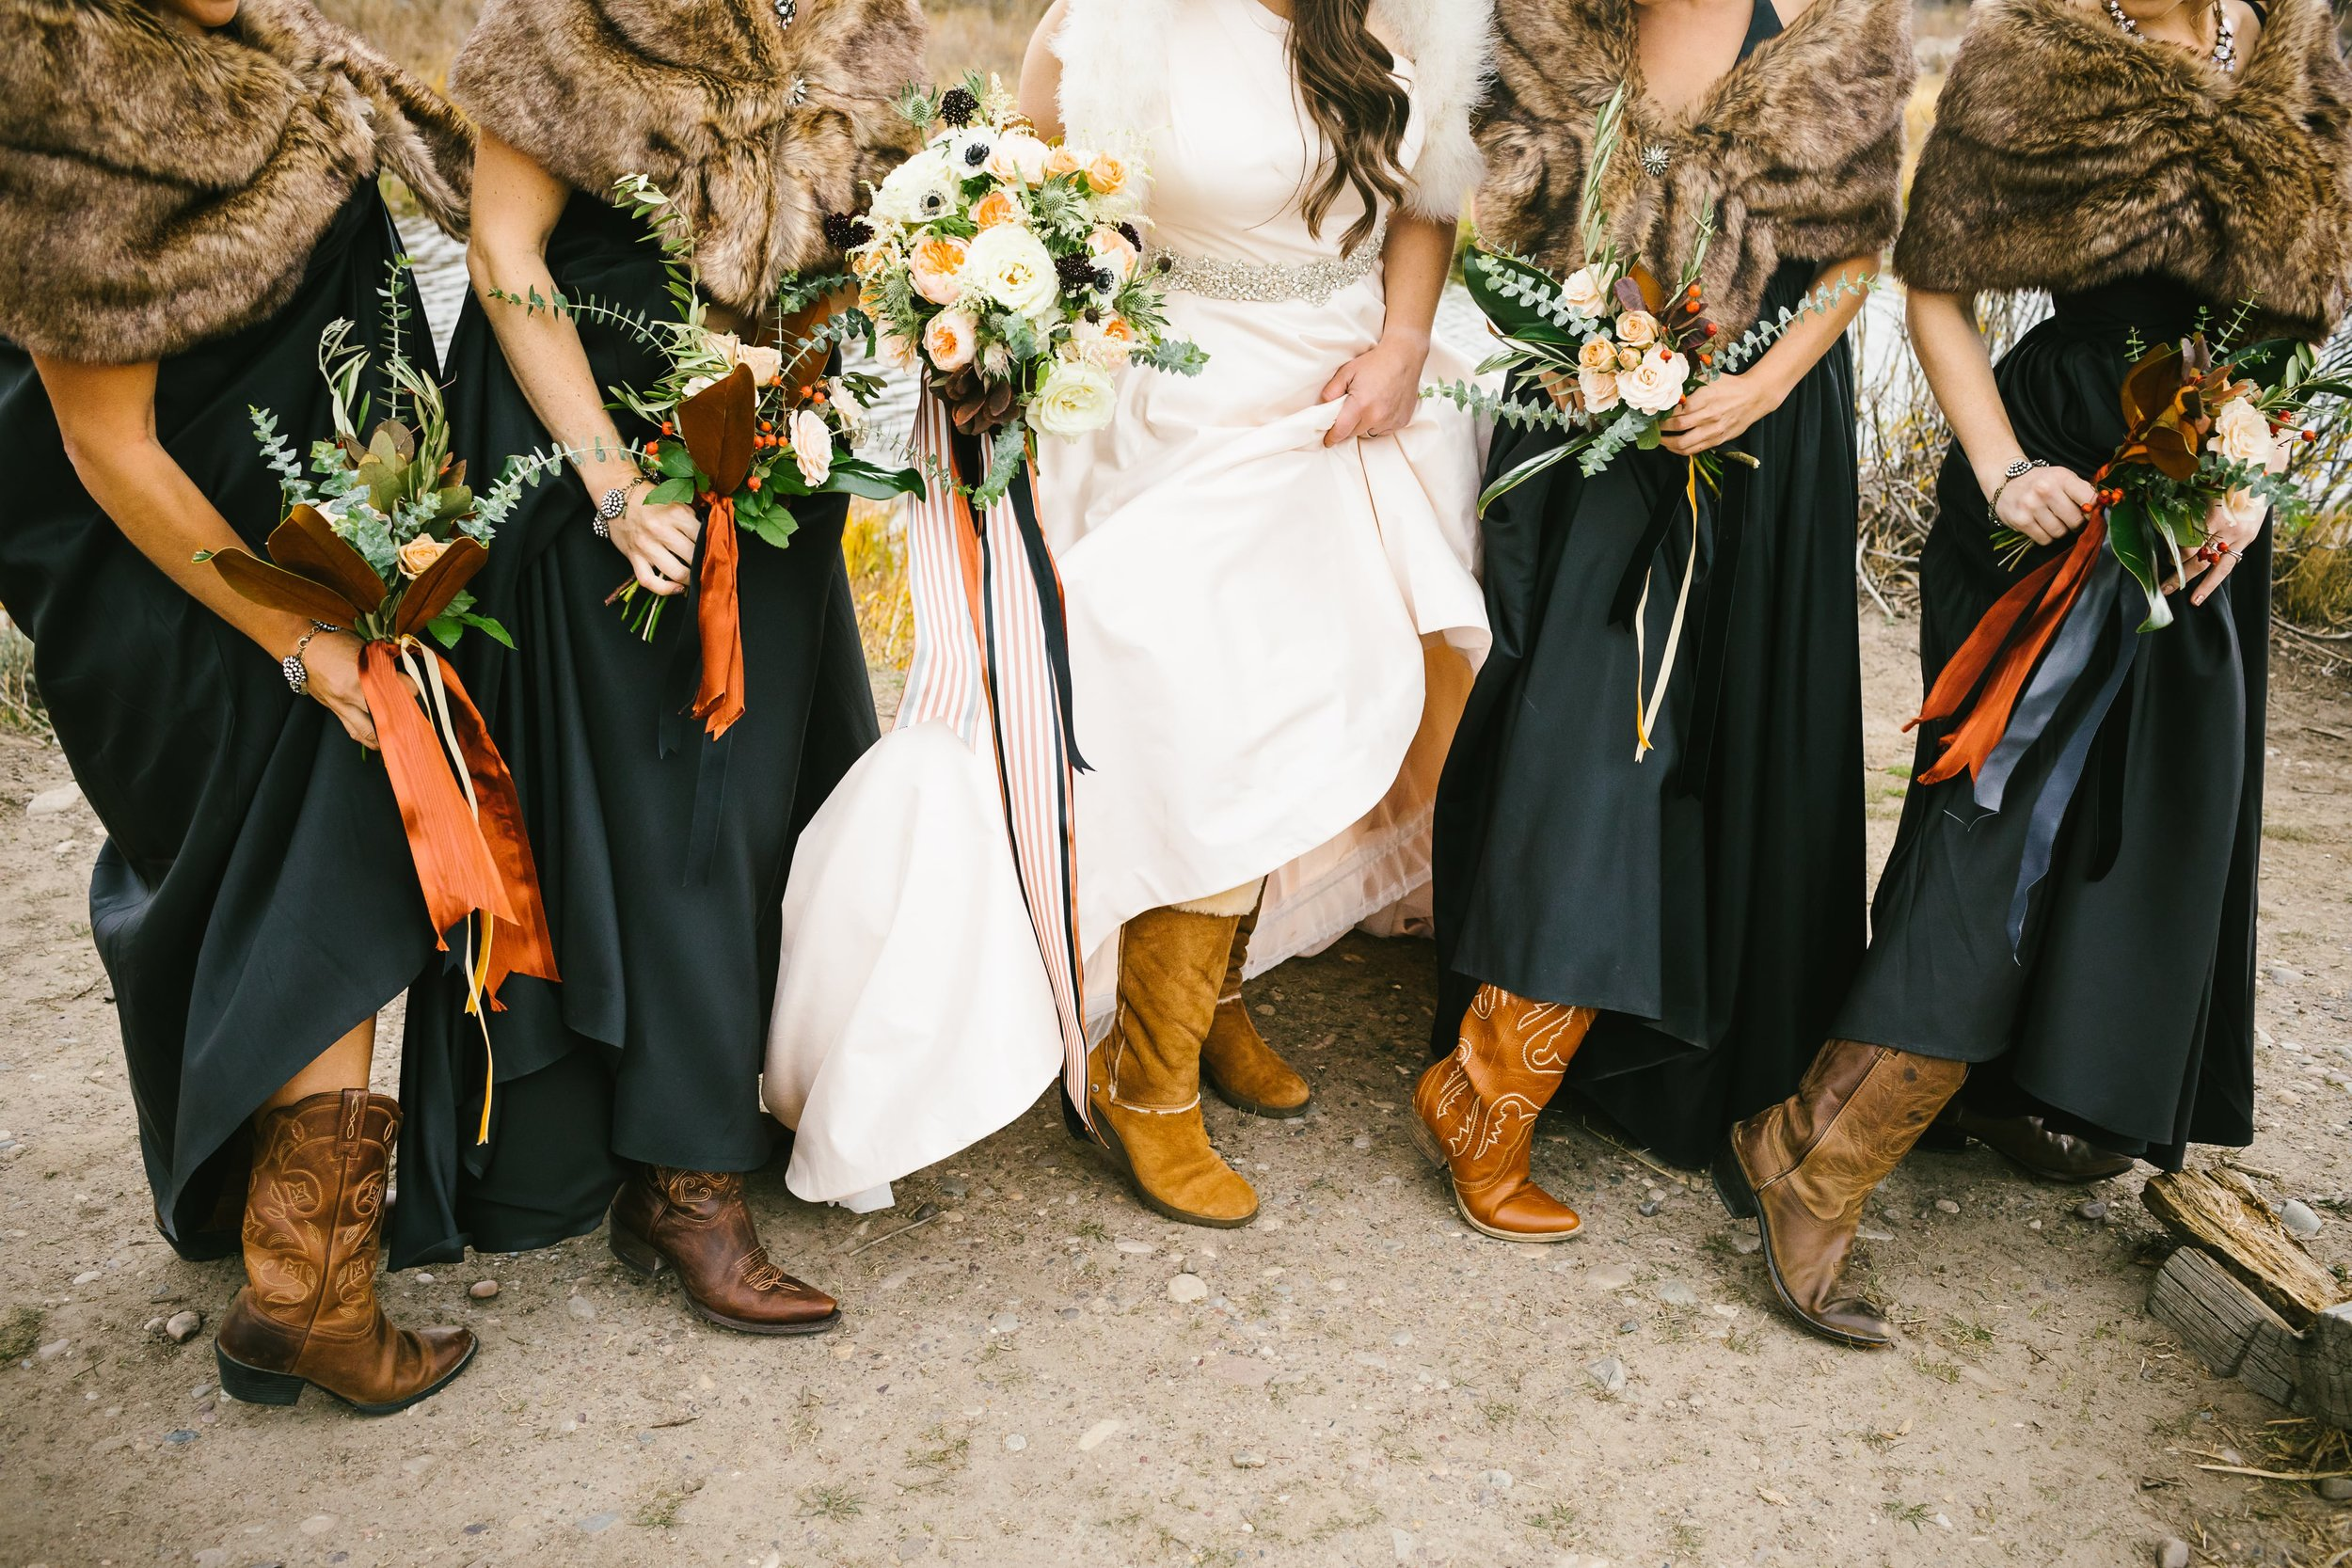 14 One of Tanya's favorite photos of all the bridesmaids' boots